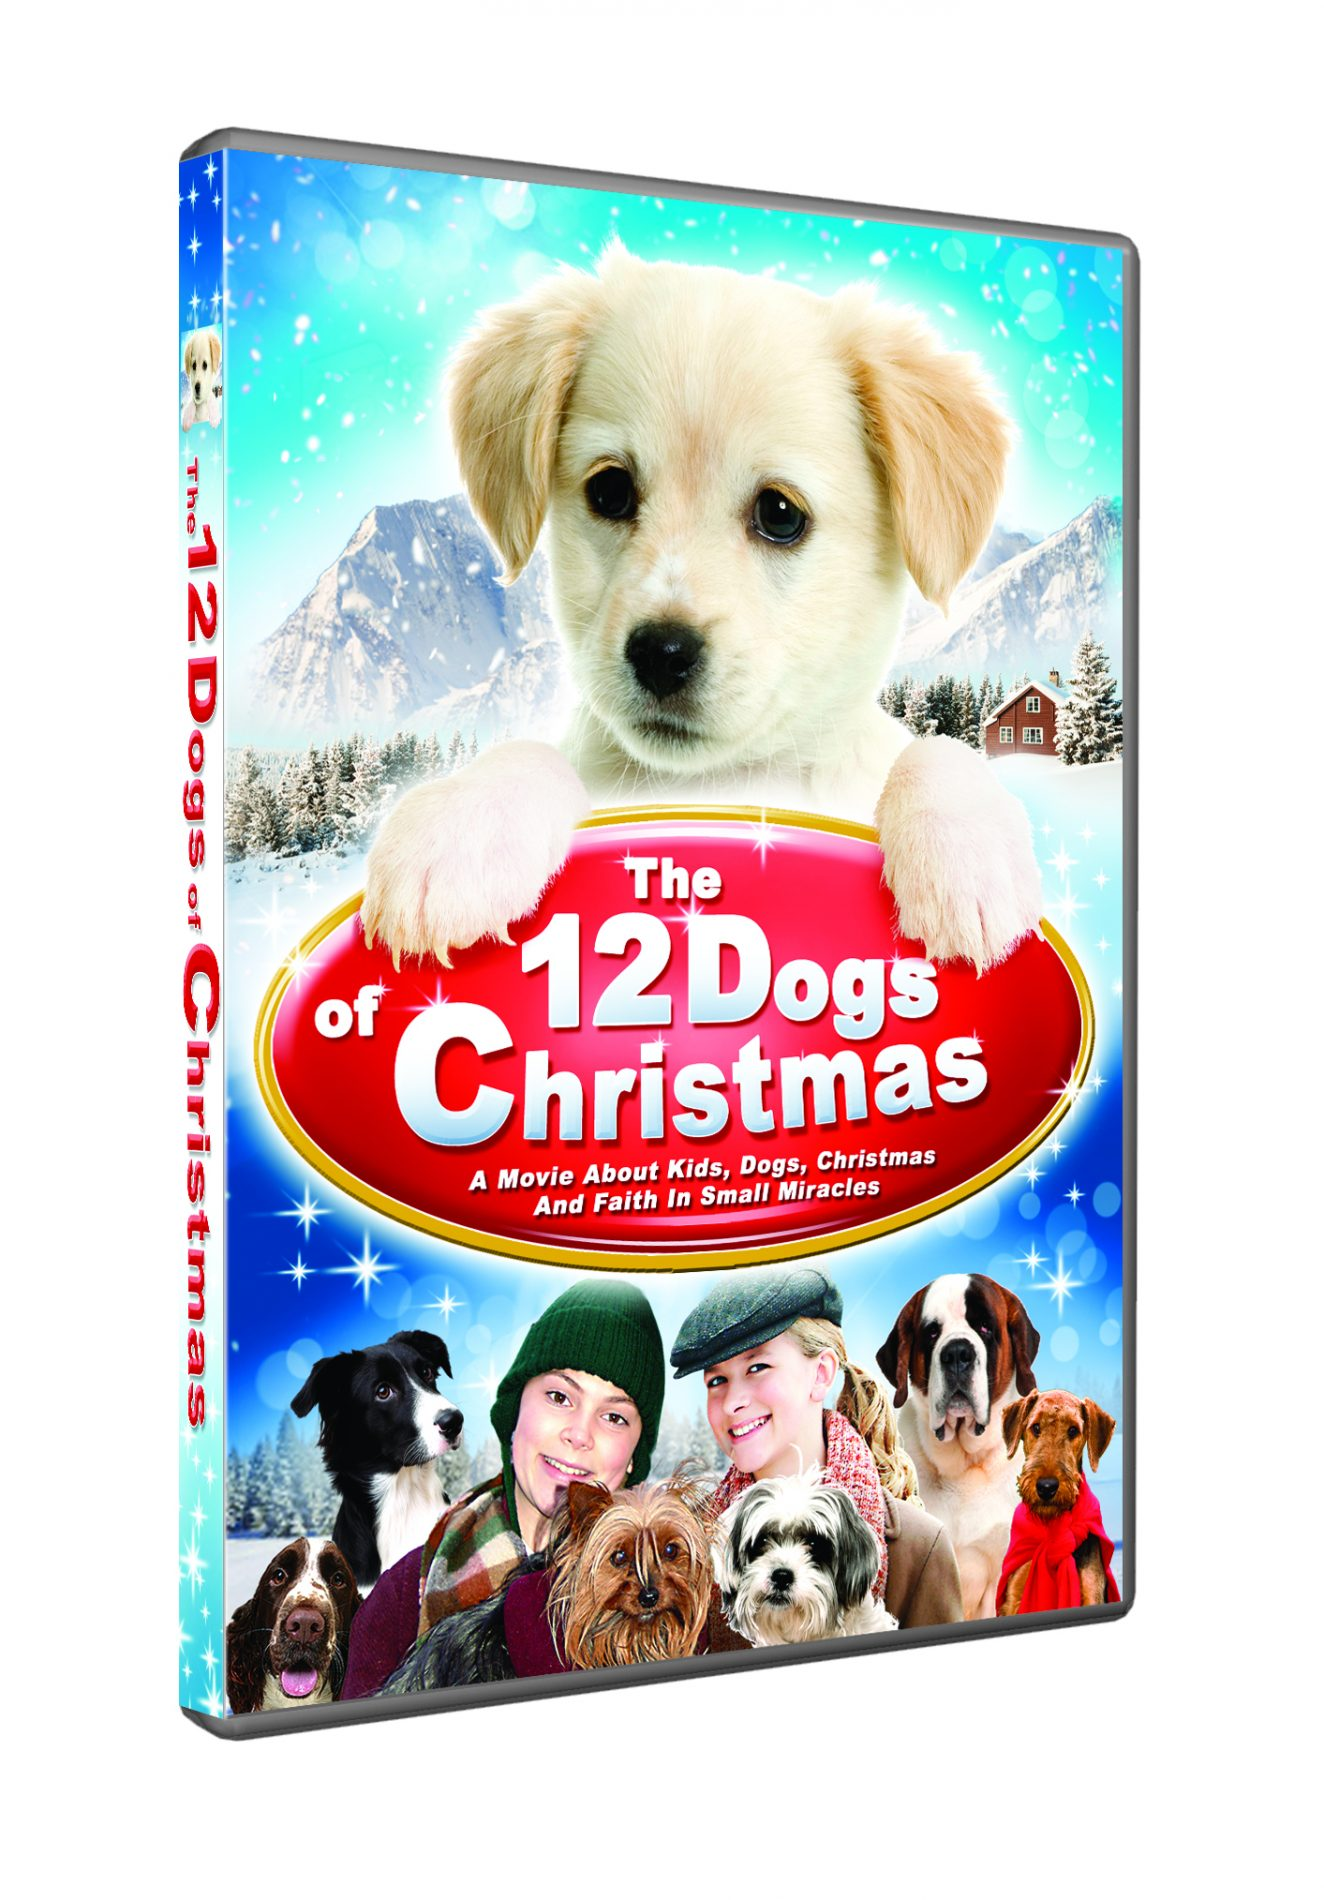 Christmas Gift Guide 2012: Best Family DVDs - London Mums Magazine